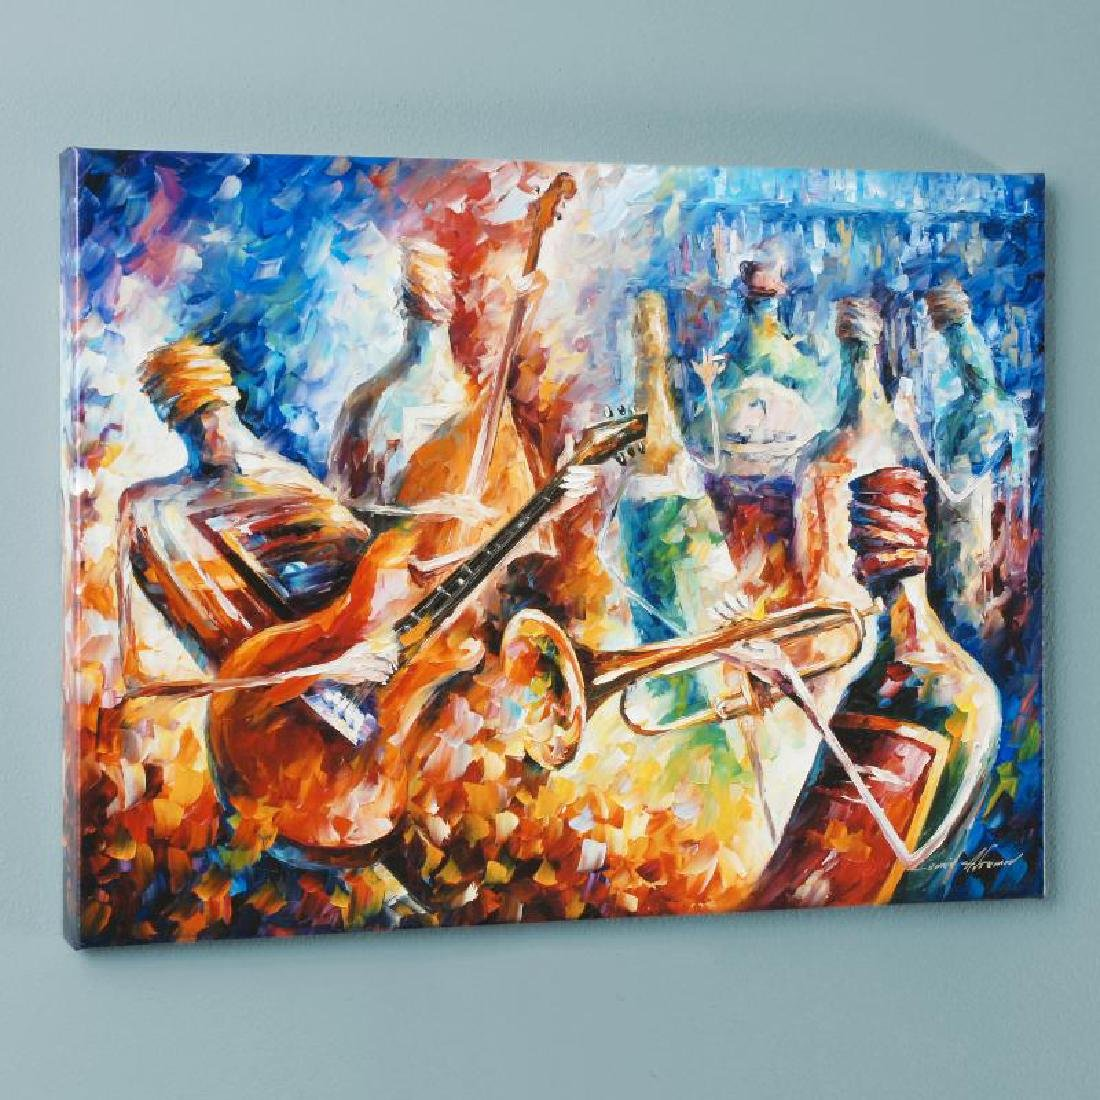 Bottle Jazz II LIMITED EDITION Giclee on Canvas by